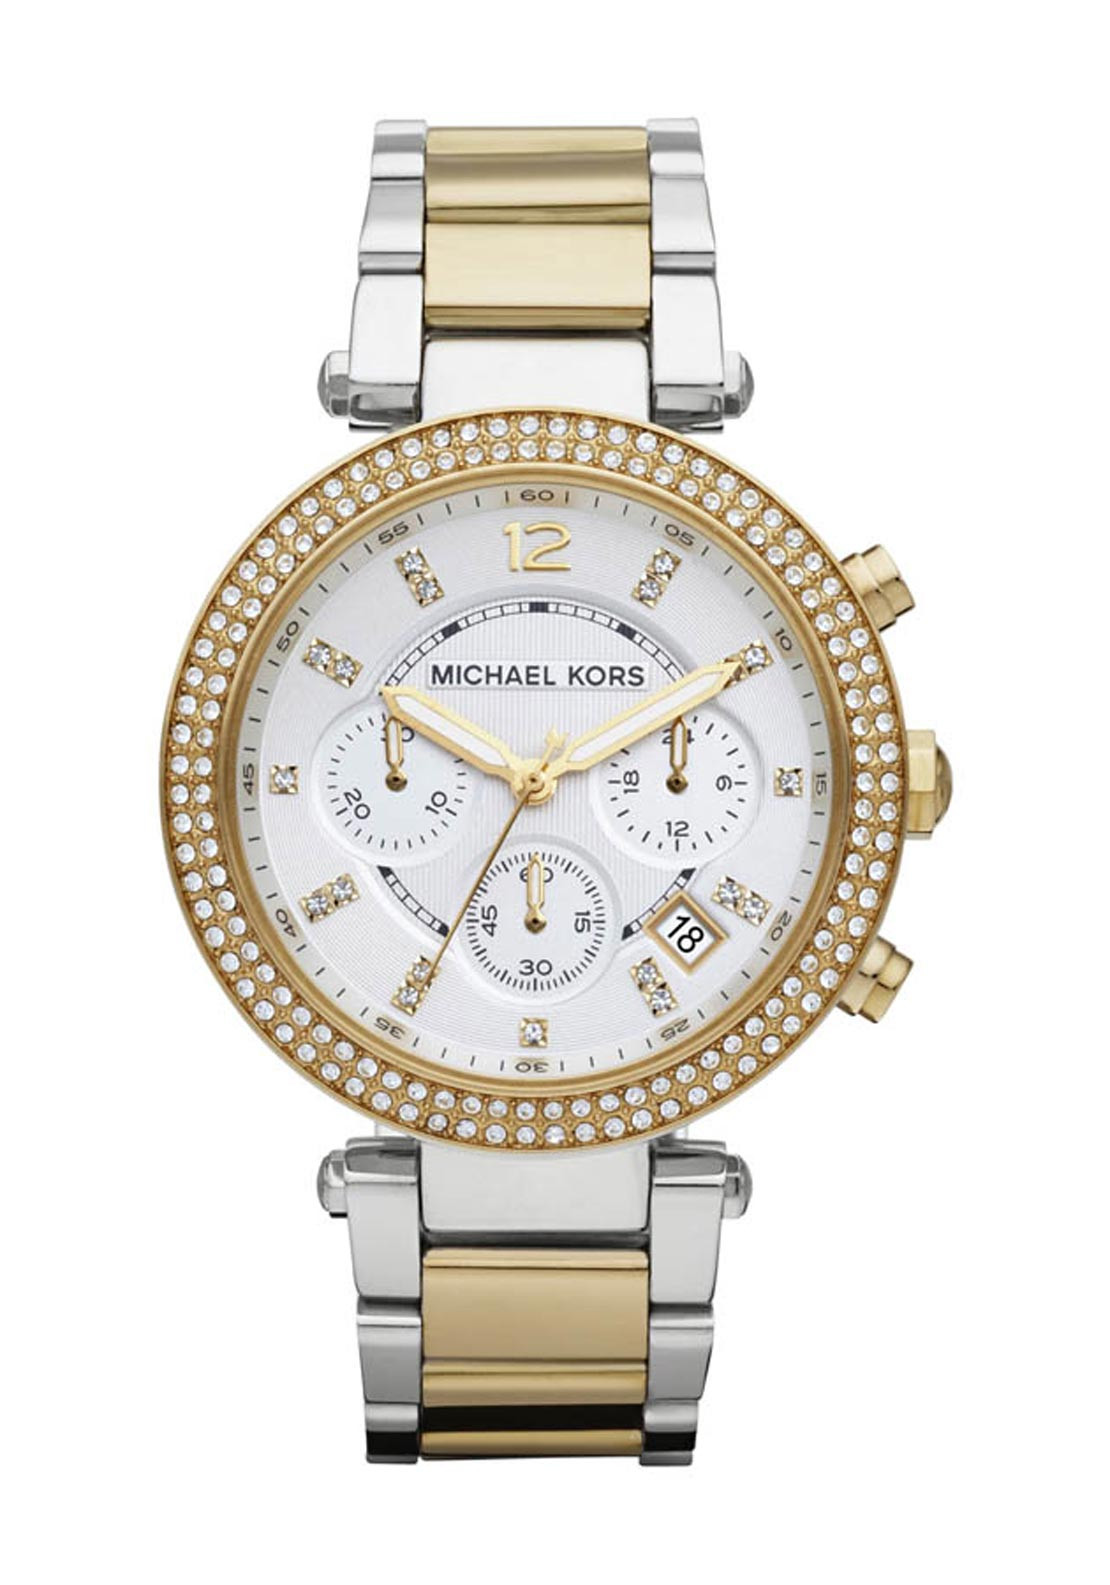 Michael Kors Womens Parker Two Tone Watch, Silver and Gold